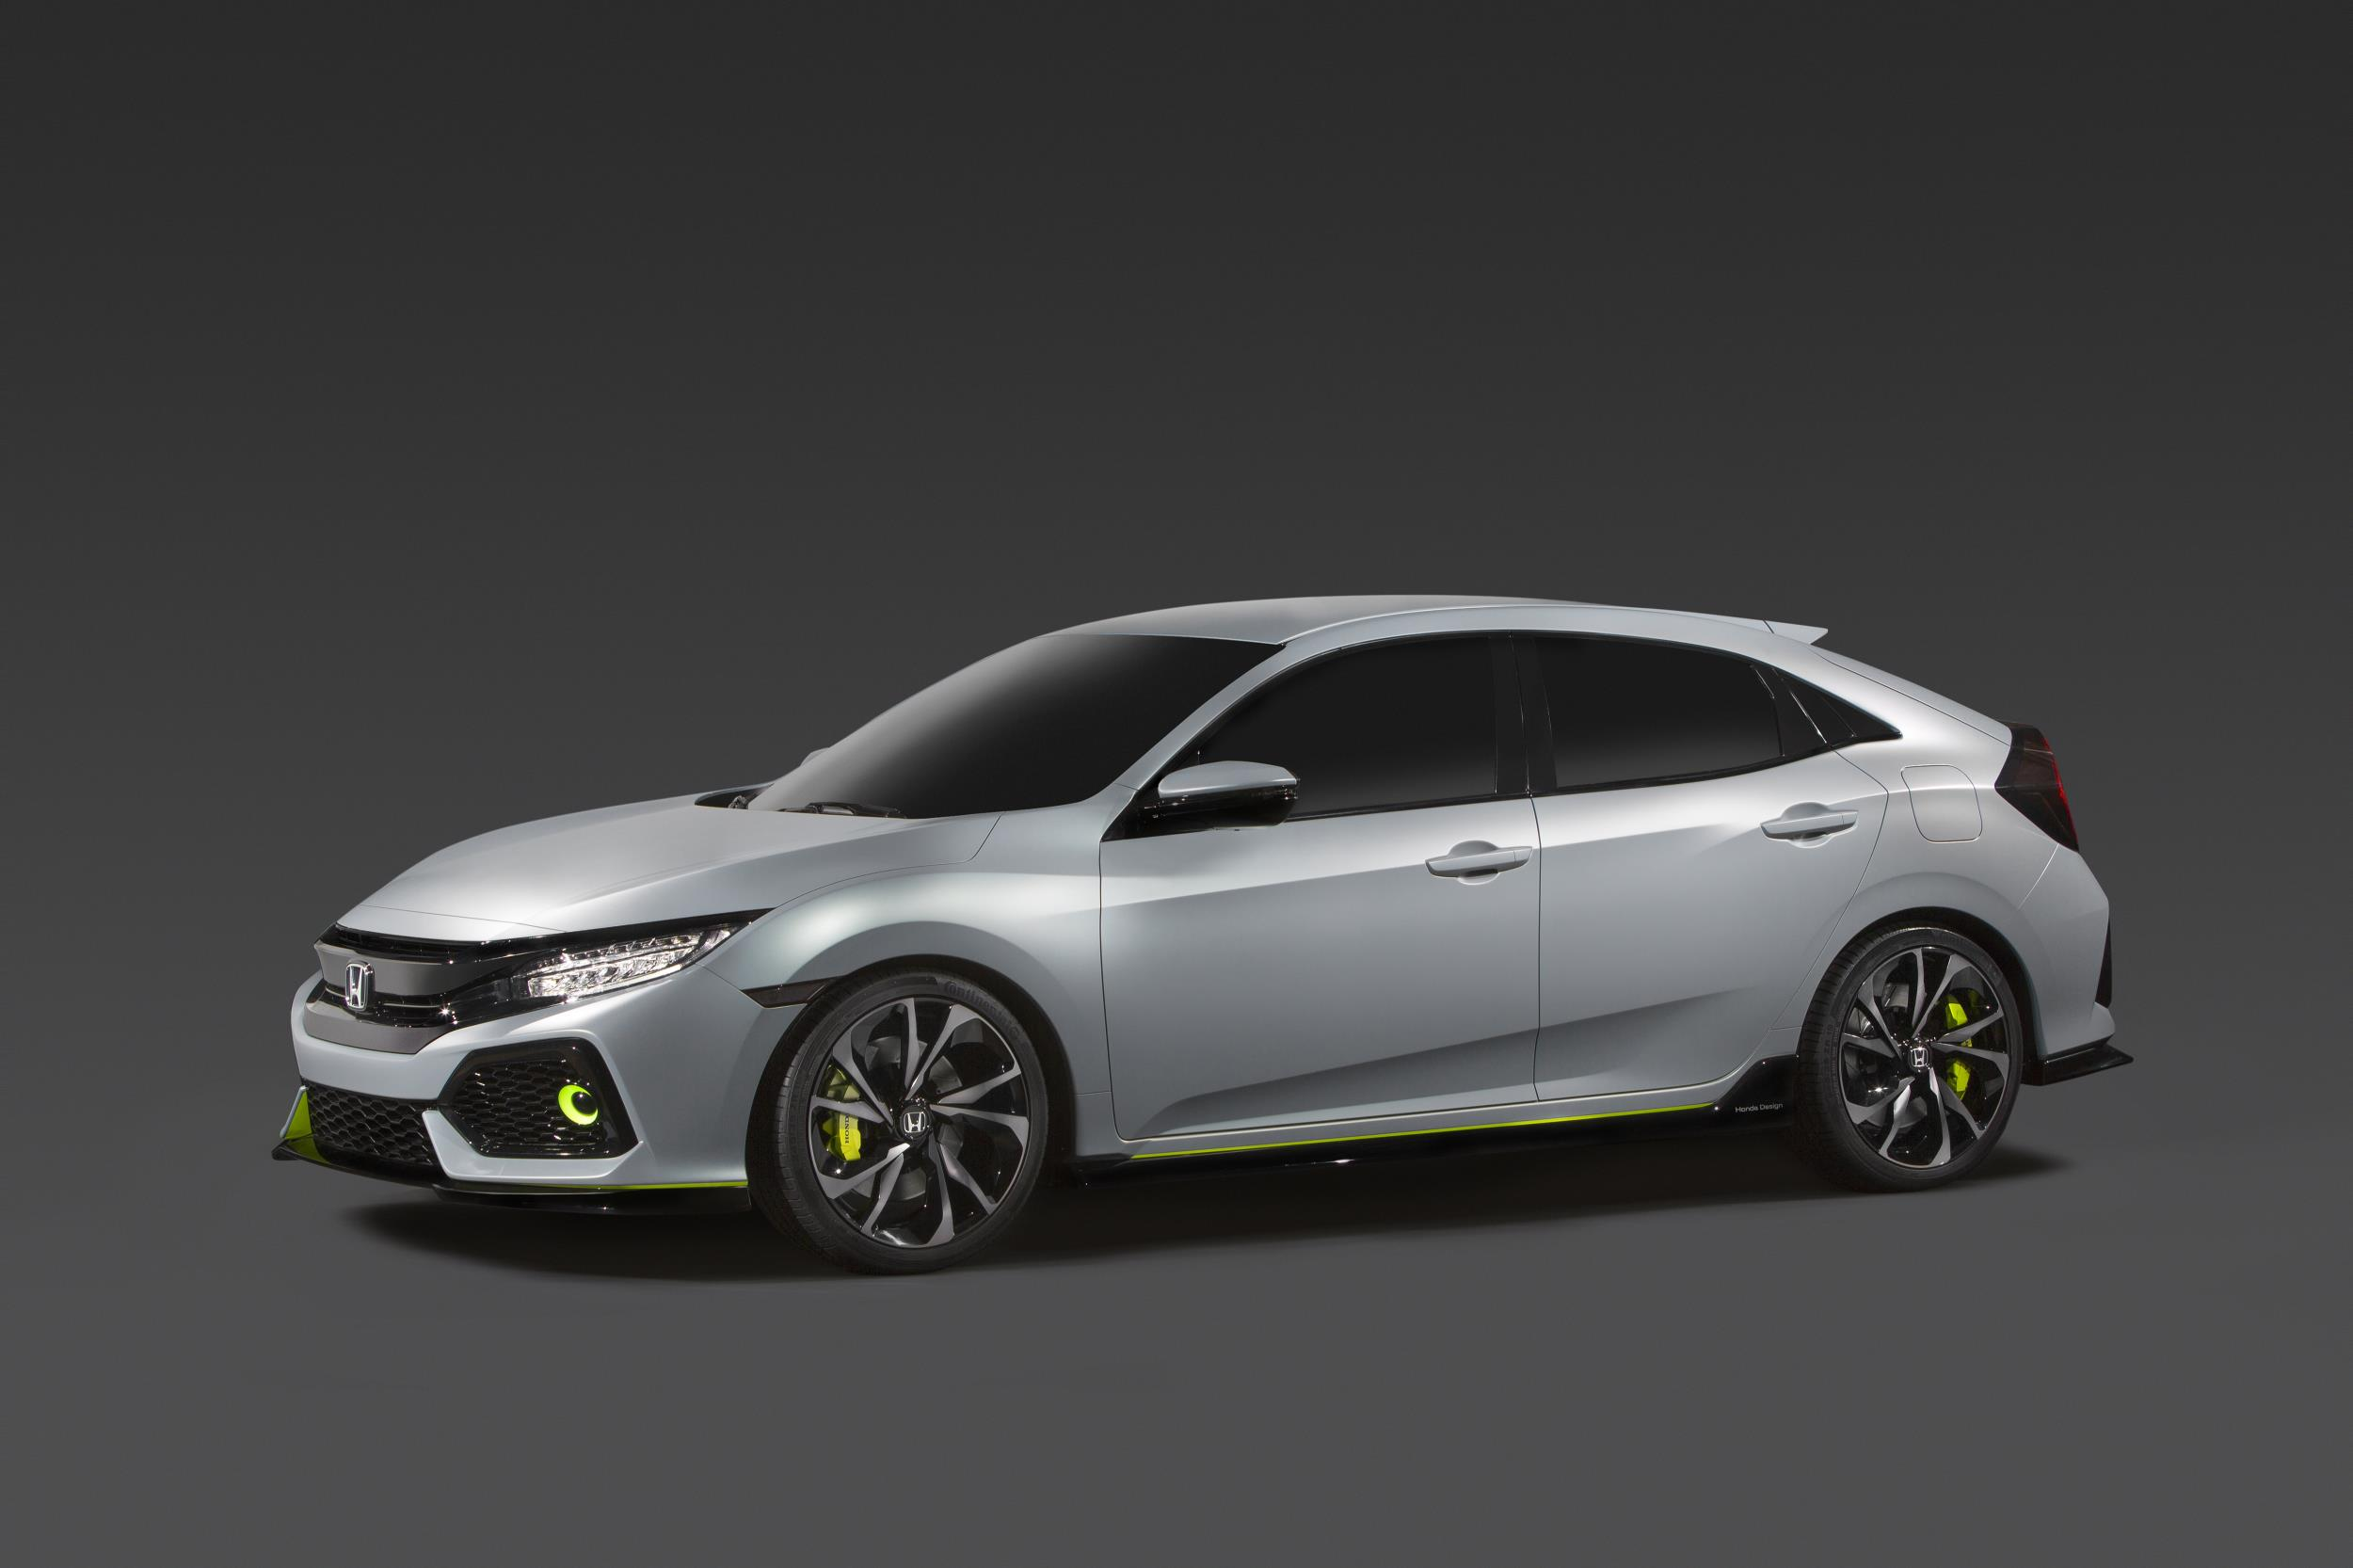 2017_Civic_Hatchback_Prototype___1